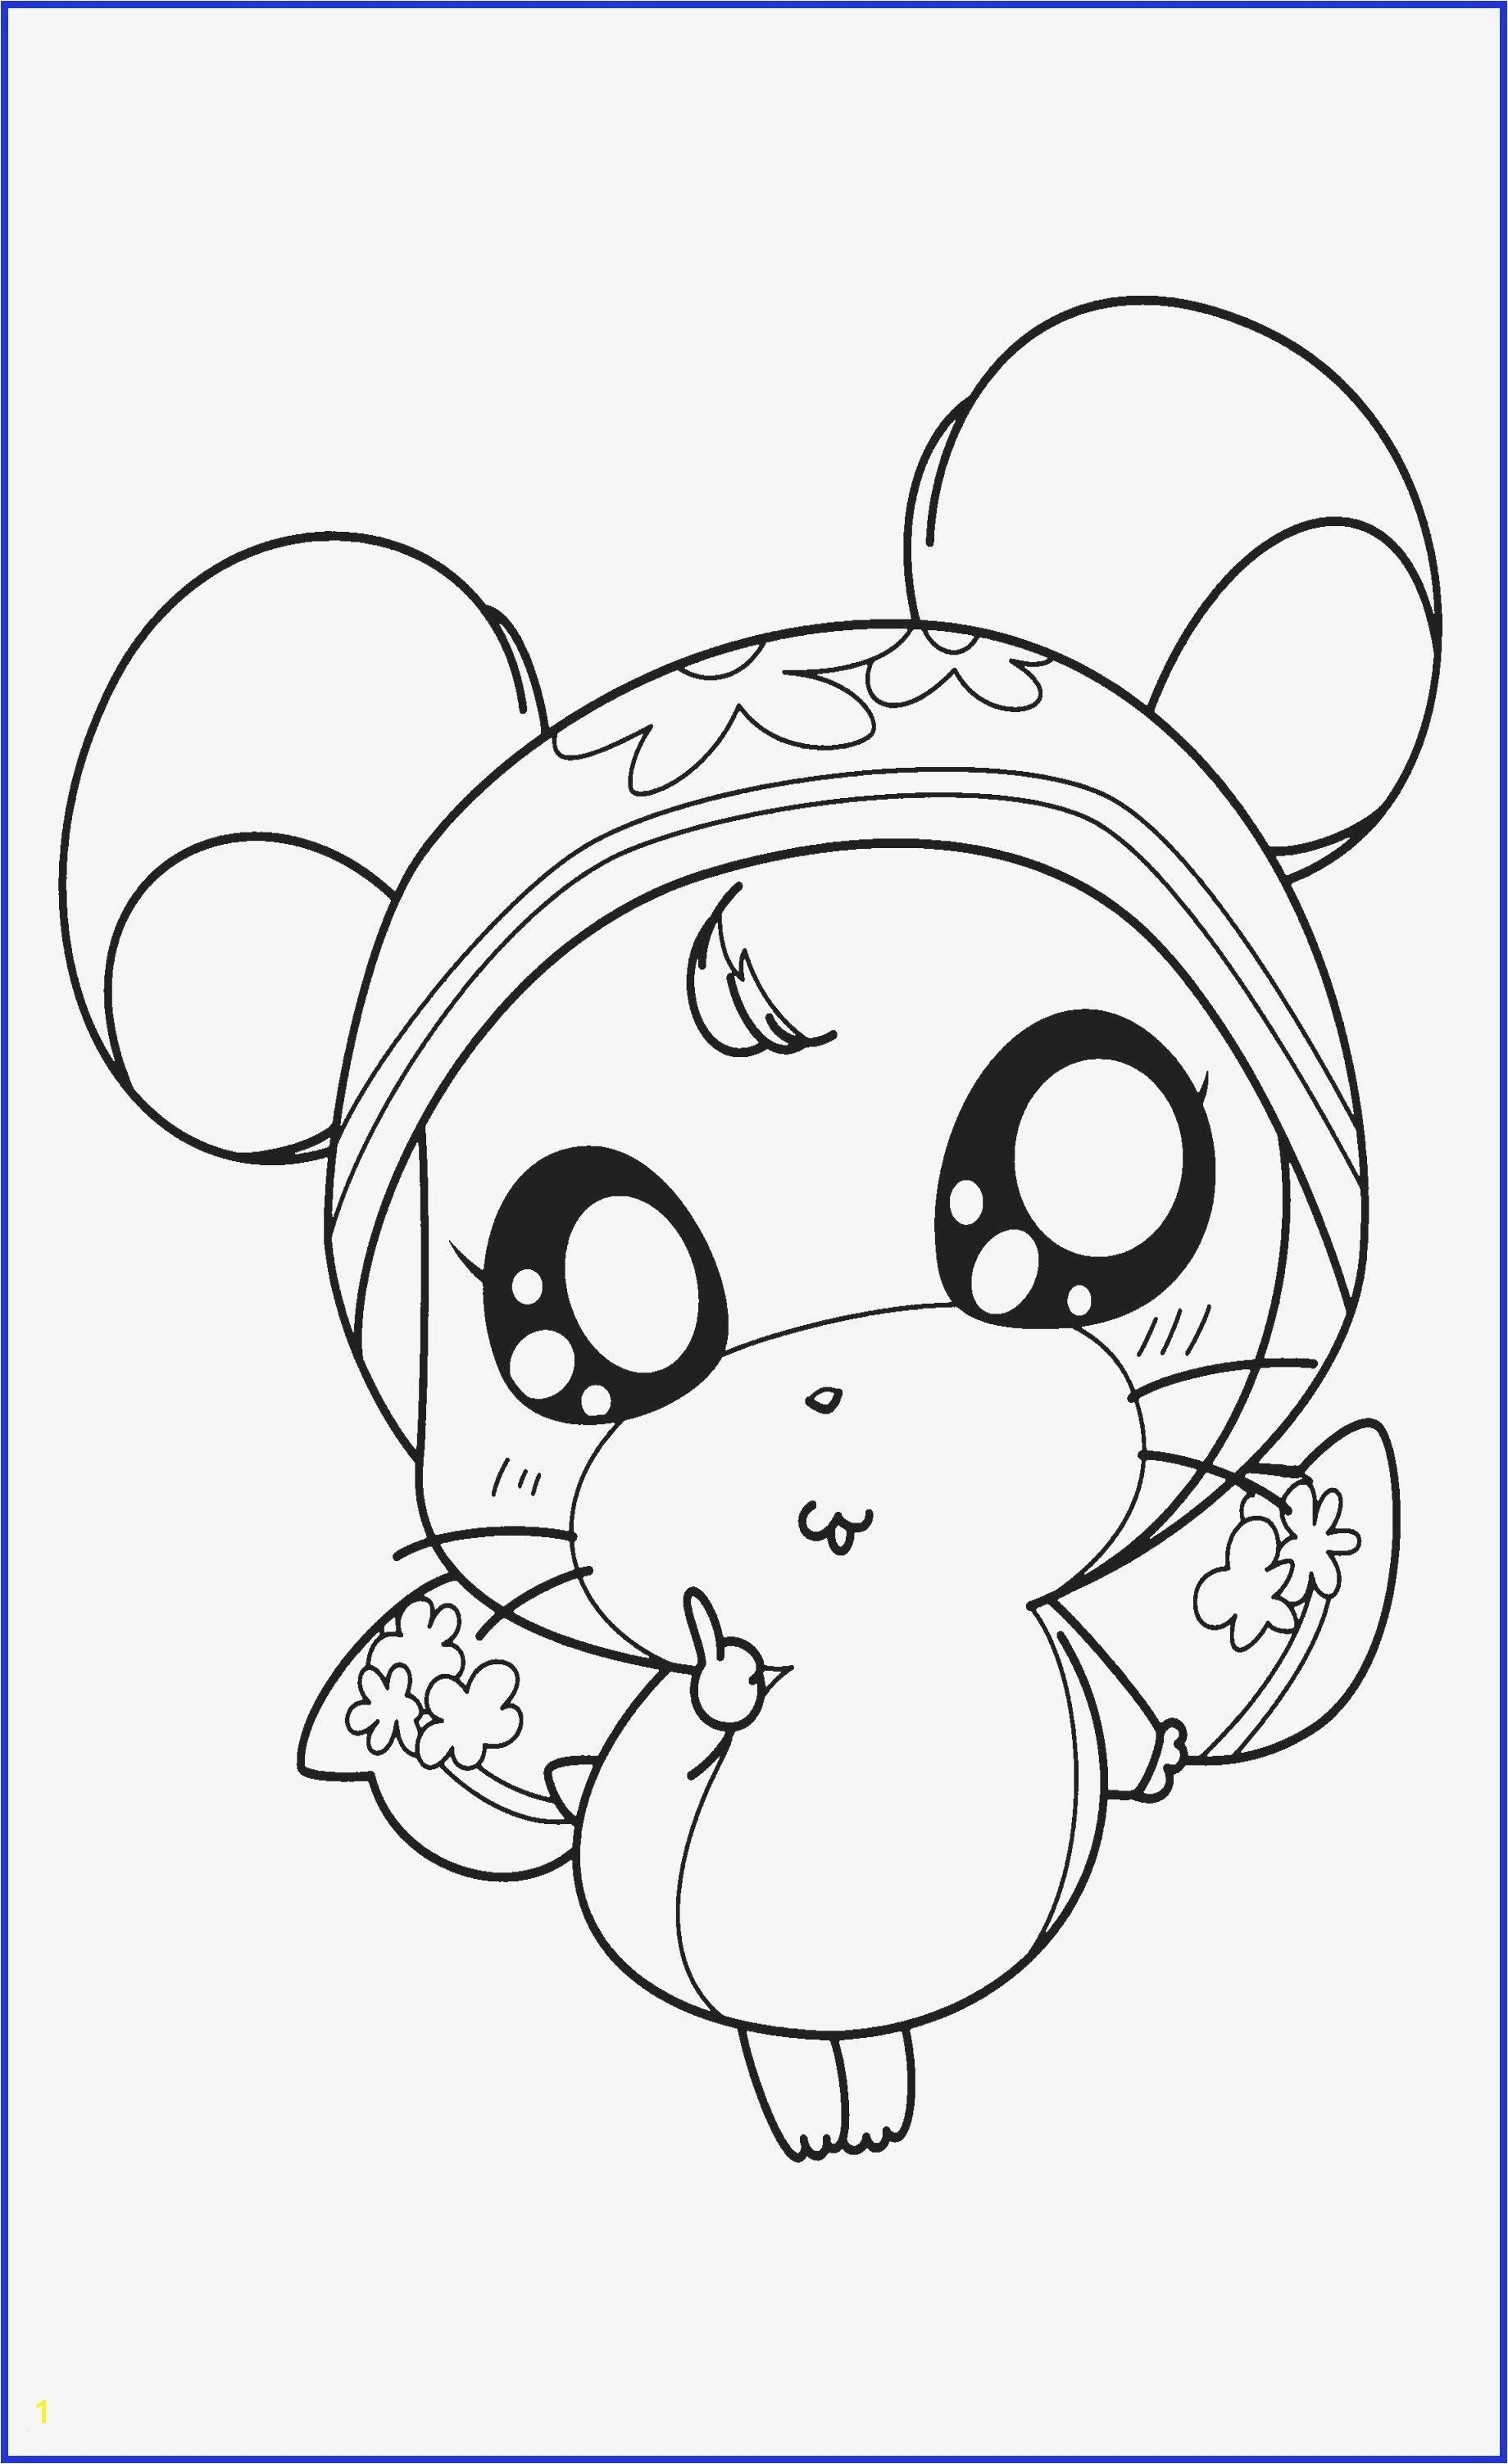 Art Coloring Pages For Kids Awesome Fruits The Spirit Coloring Page Mermaid Coloring Pages Pokemon Coloring Pages Princess Coloring Pages